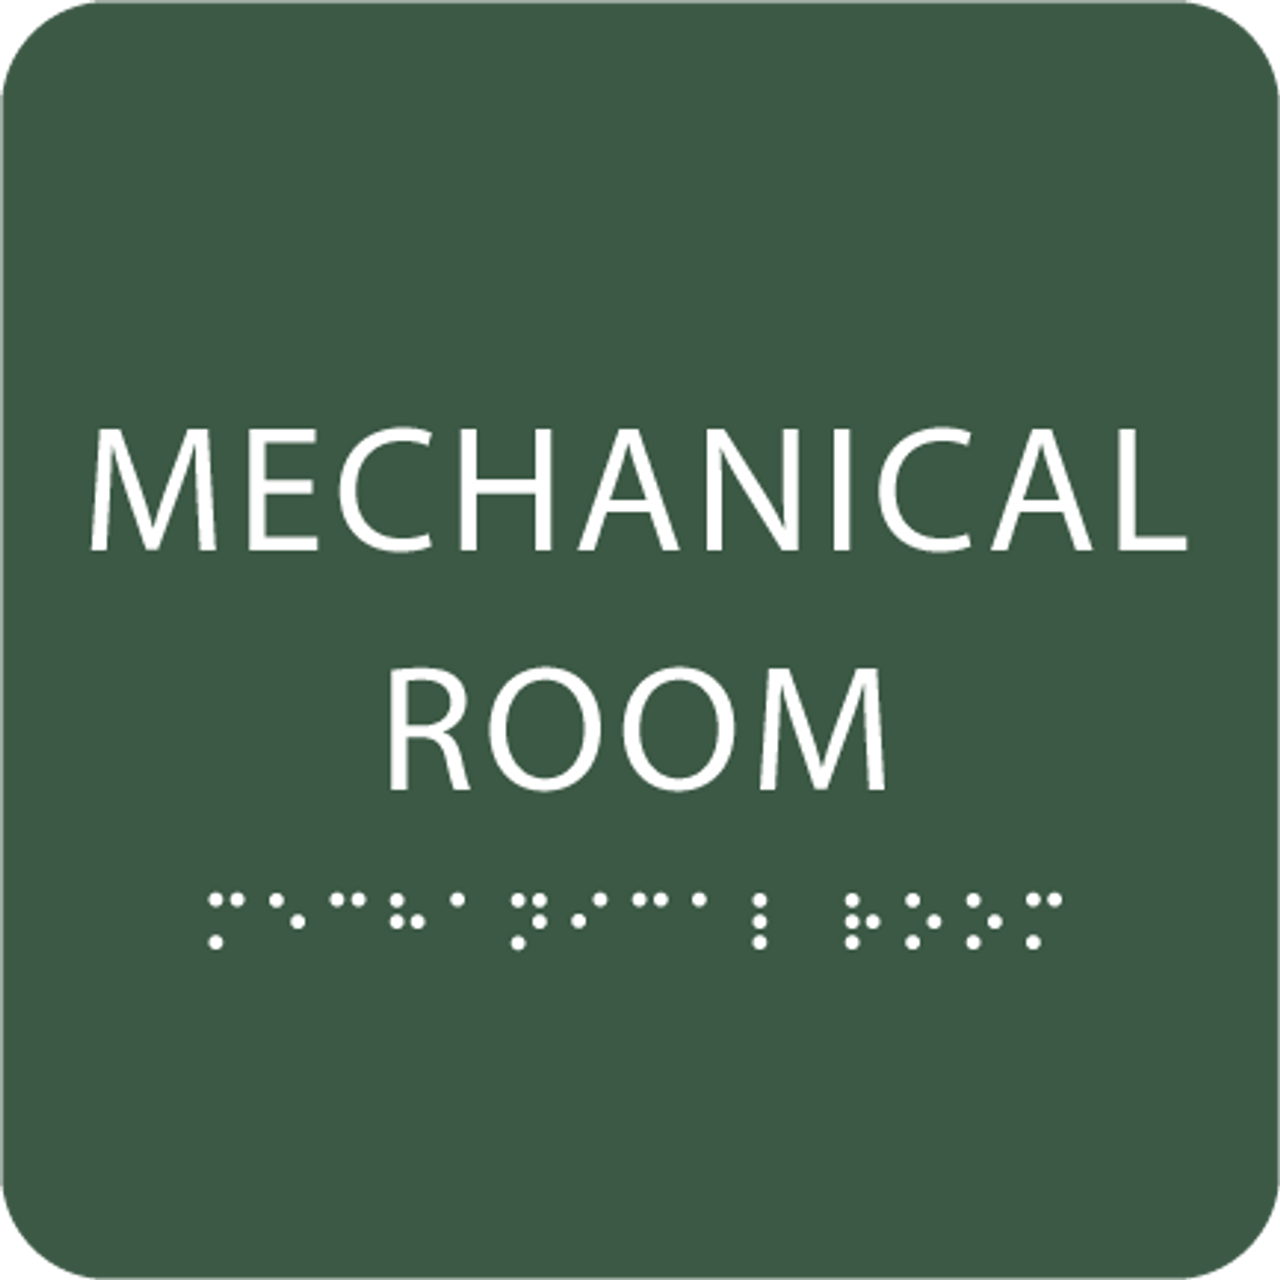 Forest Tactile Mechanical Room Sign